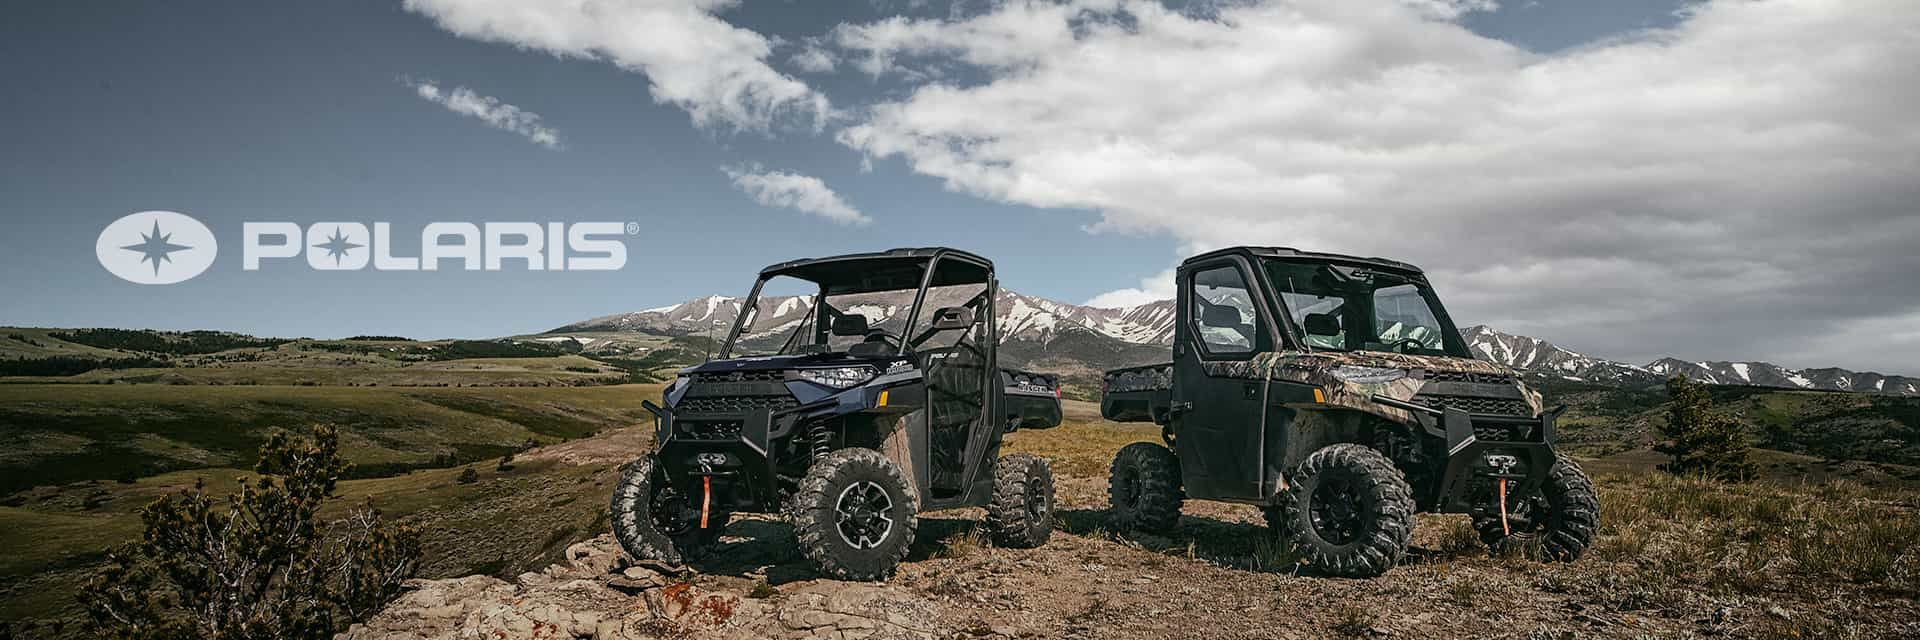 Polaris Utility Vehicles are available at Central Maine Powersports | Lewiston, ME